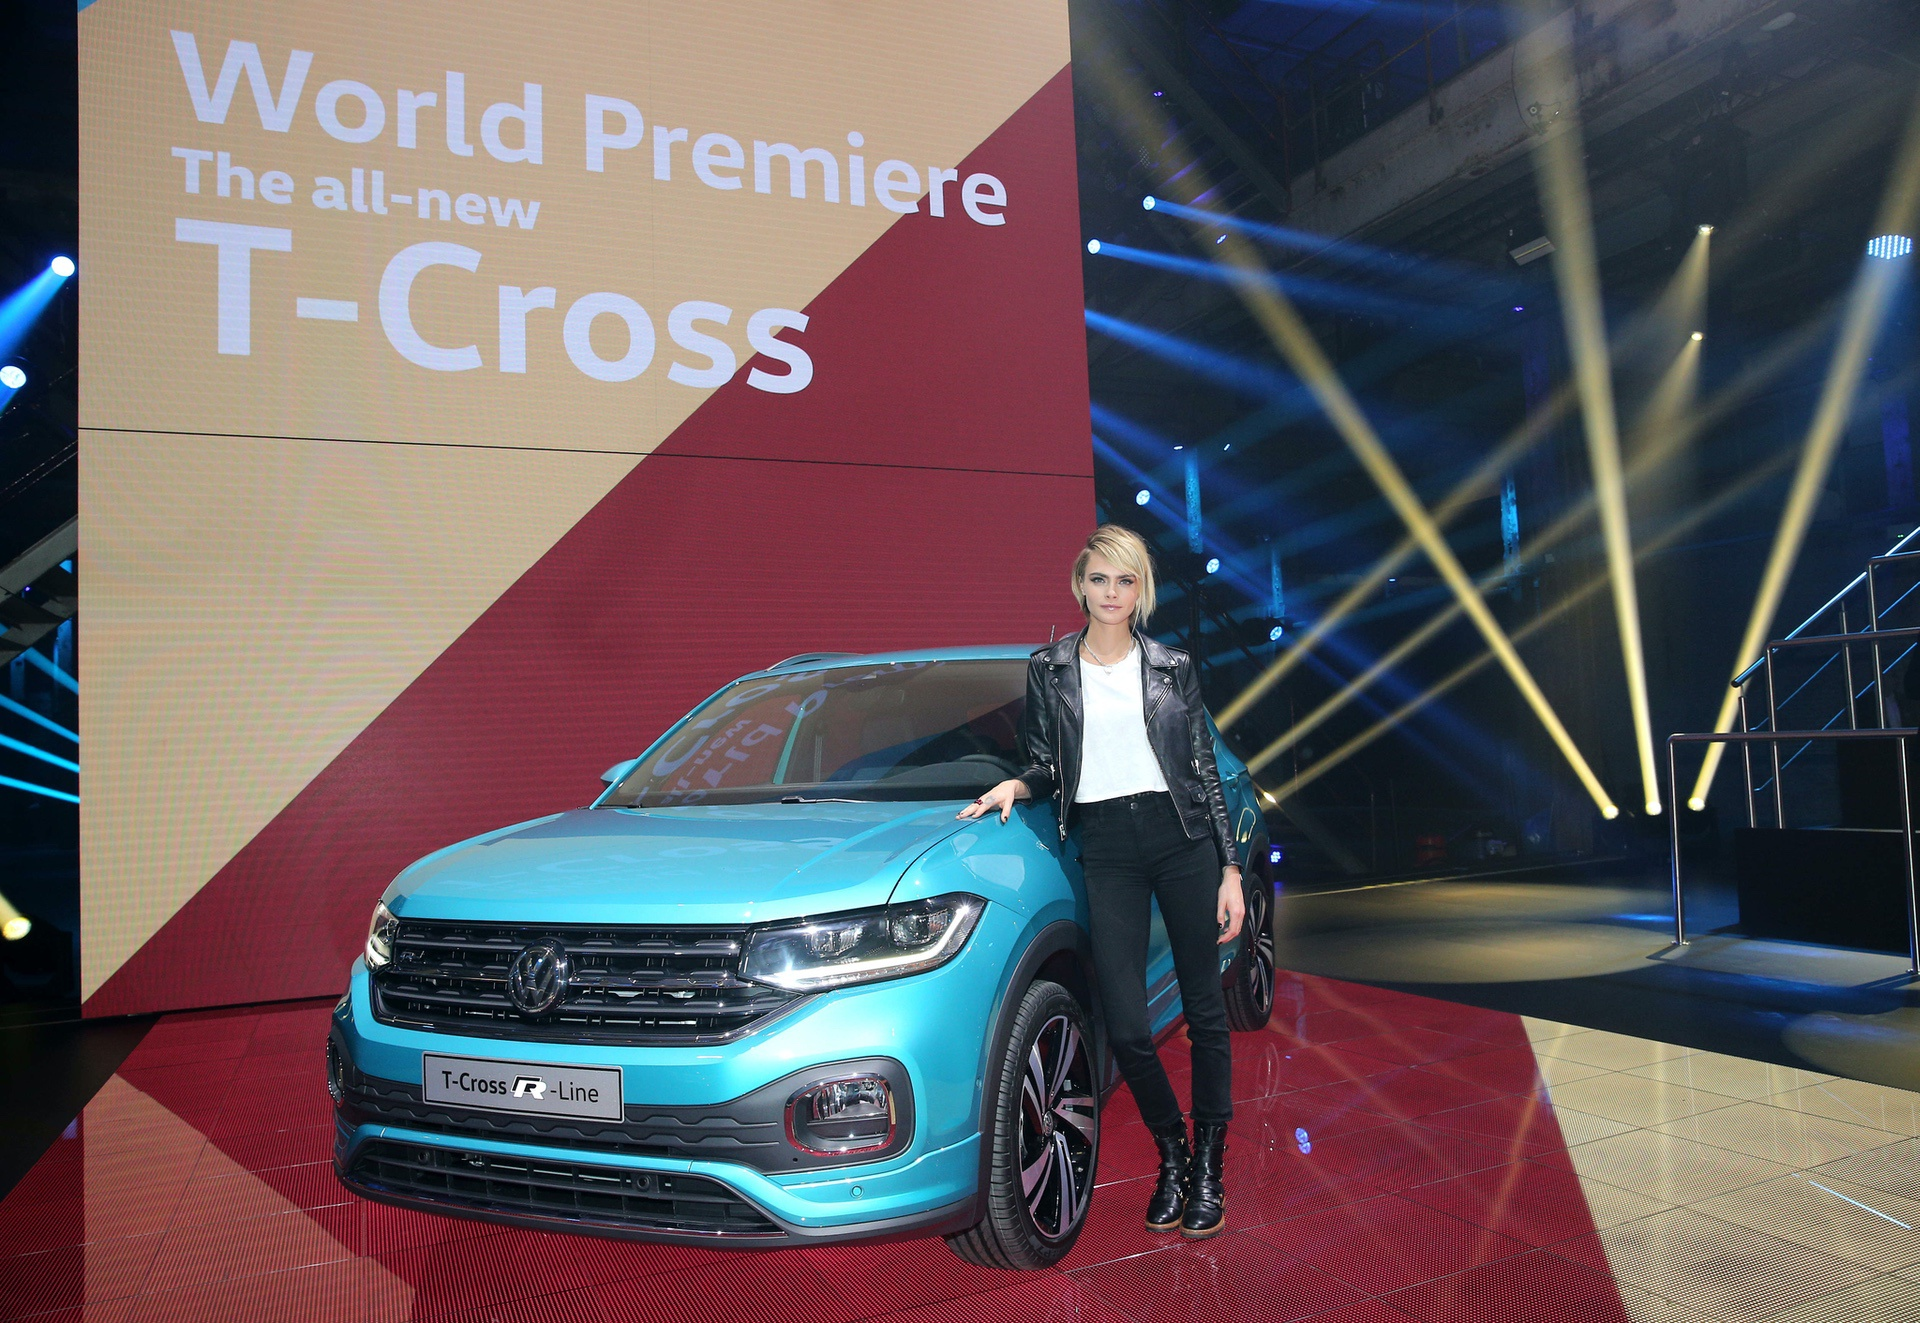 World Premiere of the all-new T-Cross: Volkswagen expands its family of SUVs